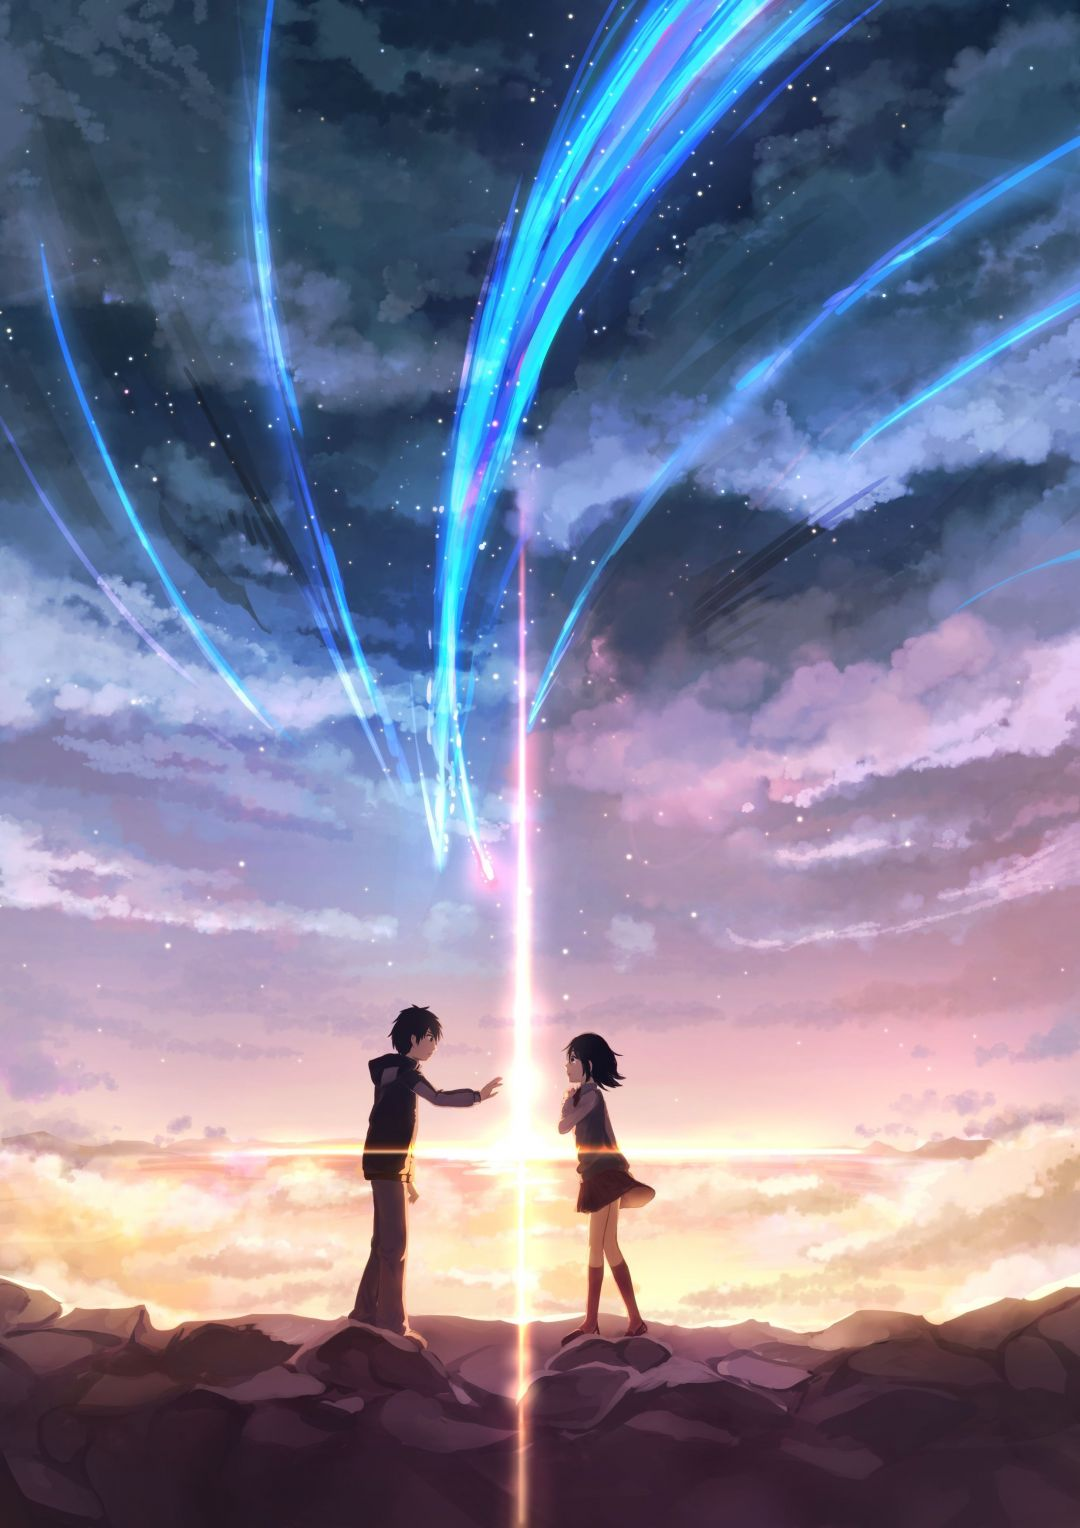 240+ Your Name Anime - Android, iPhone, Desktop HD ...